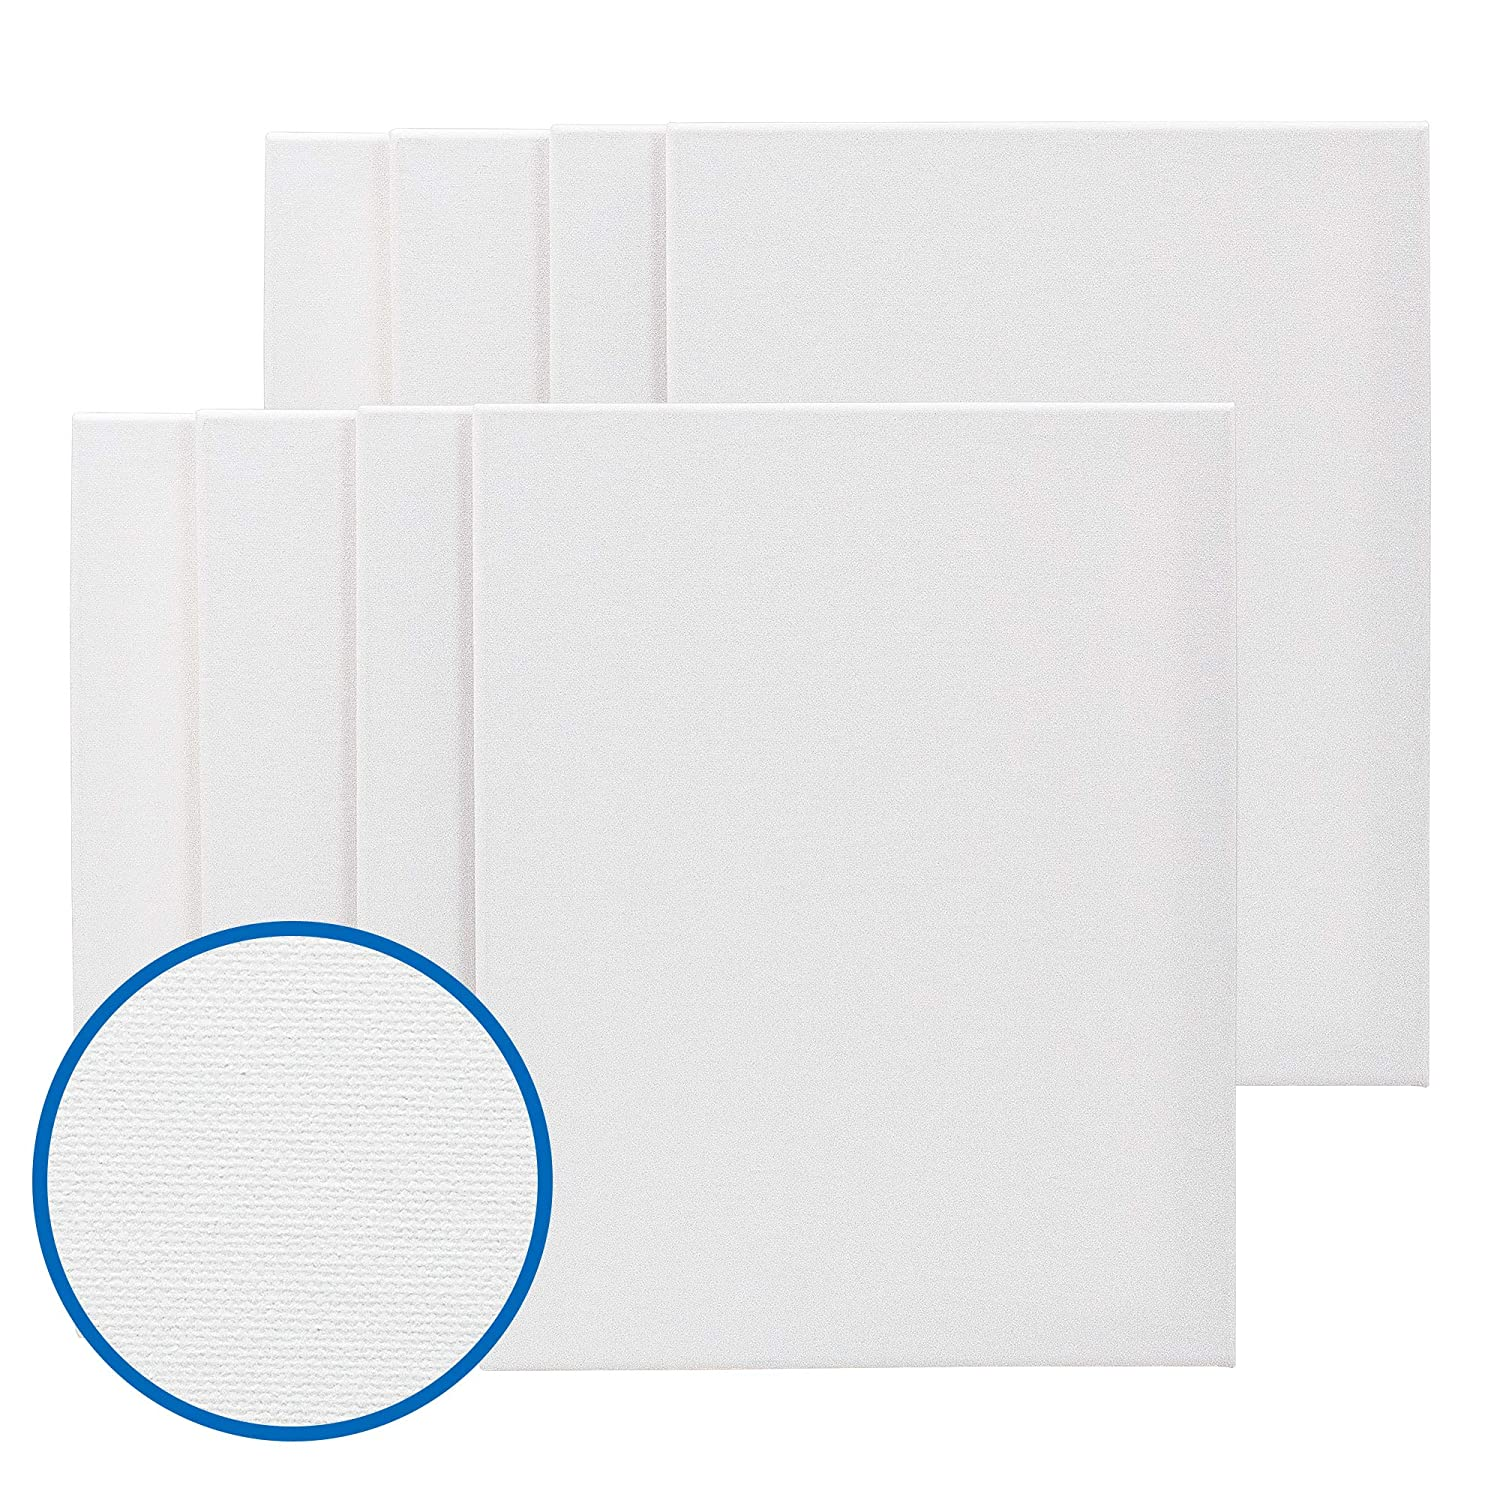 FIXSMITH Stretched White Blank Canvas 12x12 Inch,Bulk Pack of 8,Primed,100/% Cotton,5//8 Inch Profile of Super Value Pack for Acrylics,Oils /& Other Painting Media